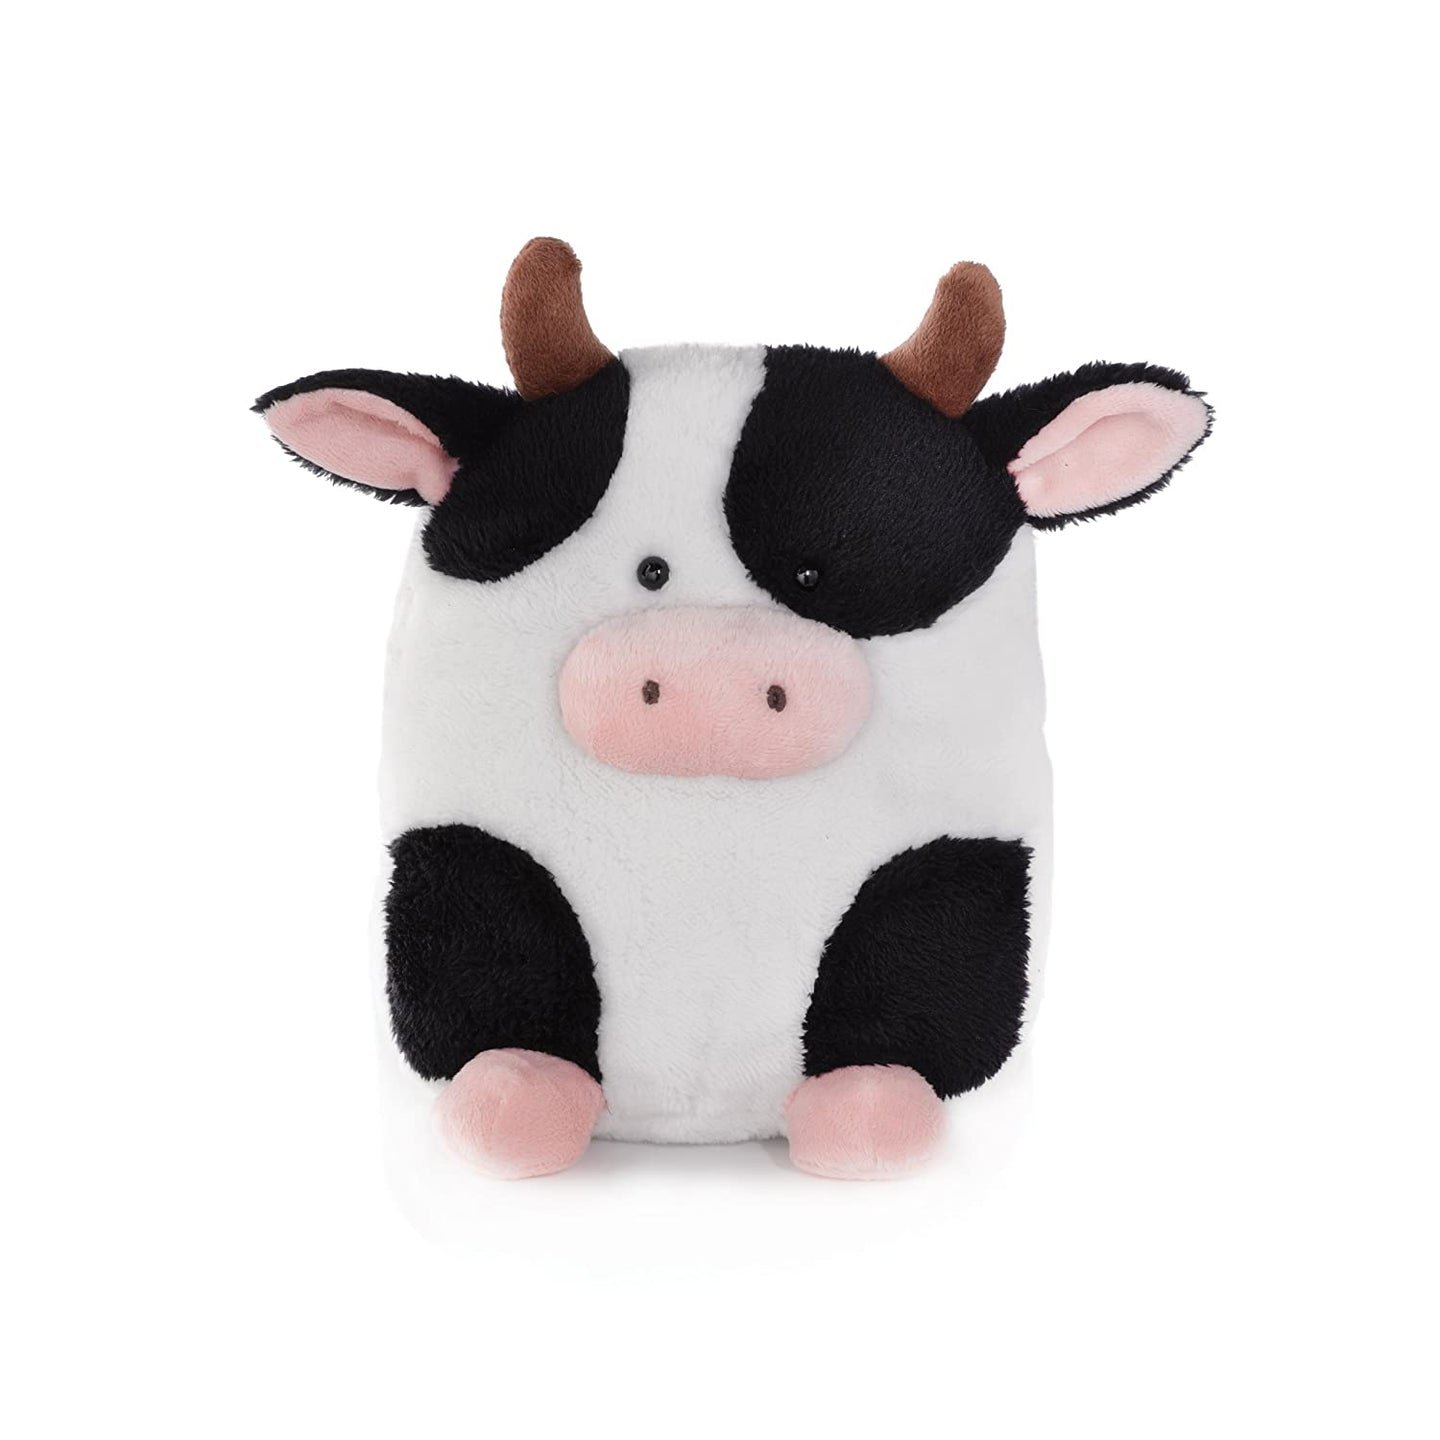 Daphne The Cow